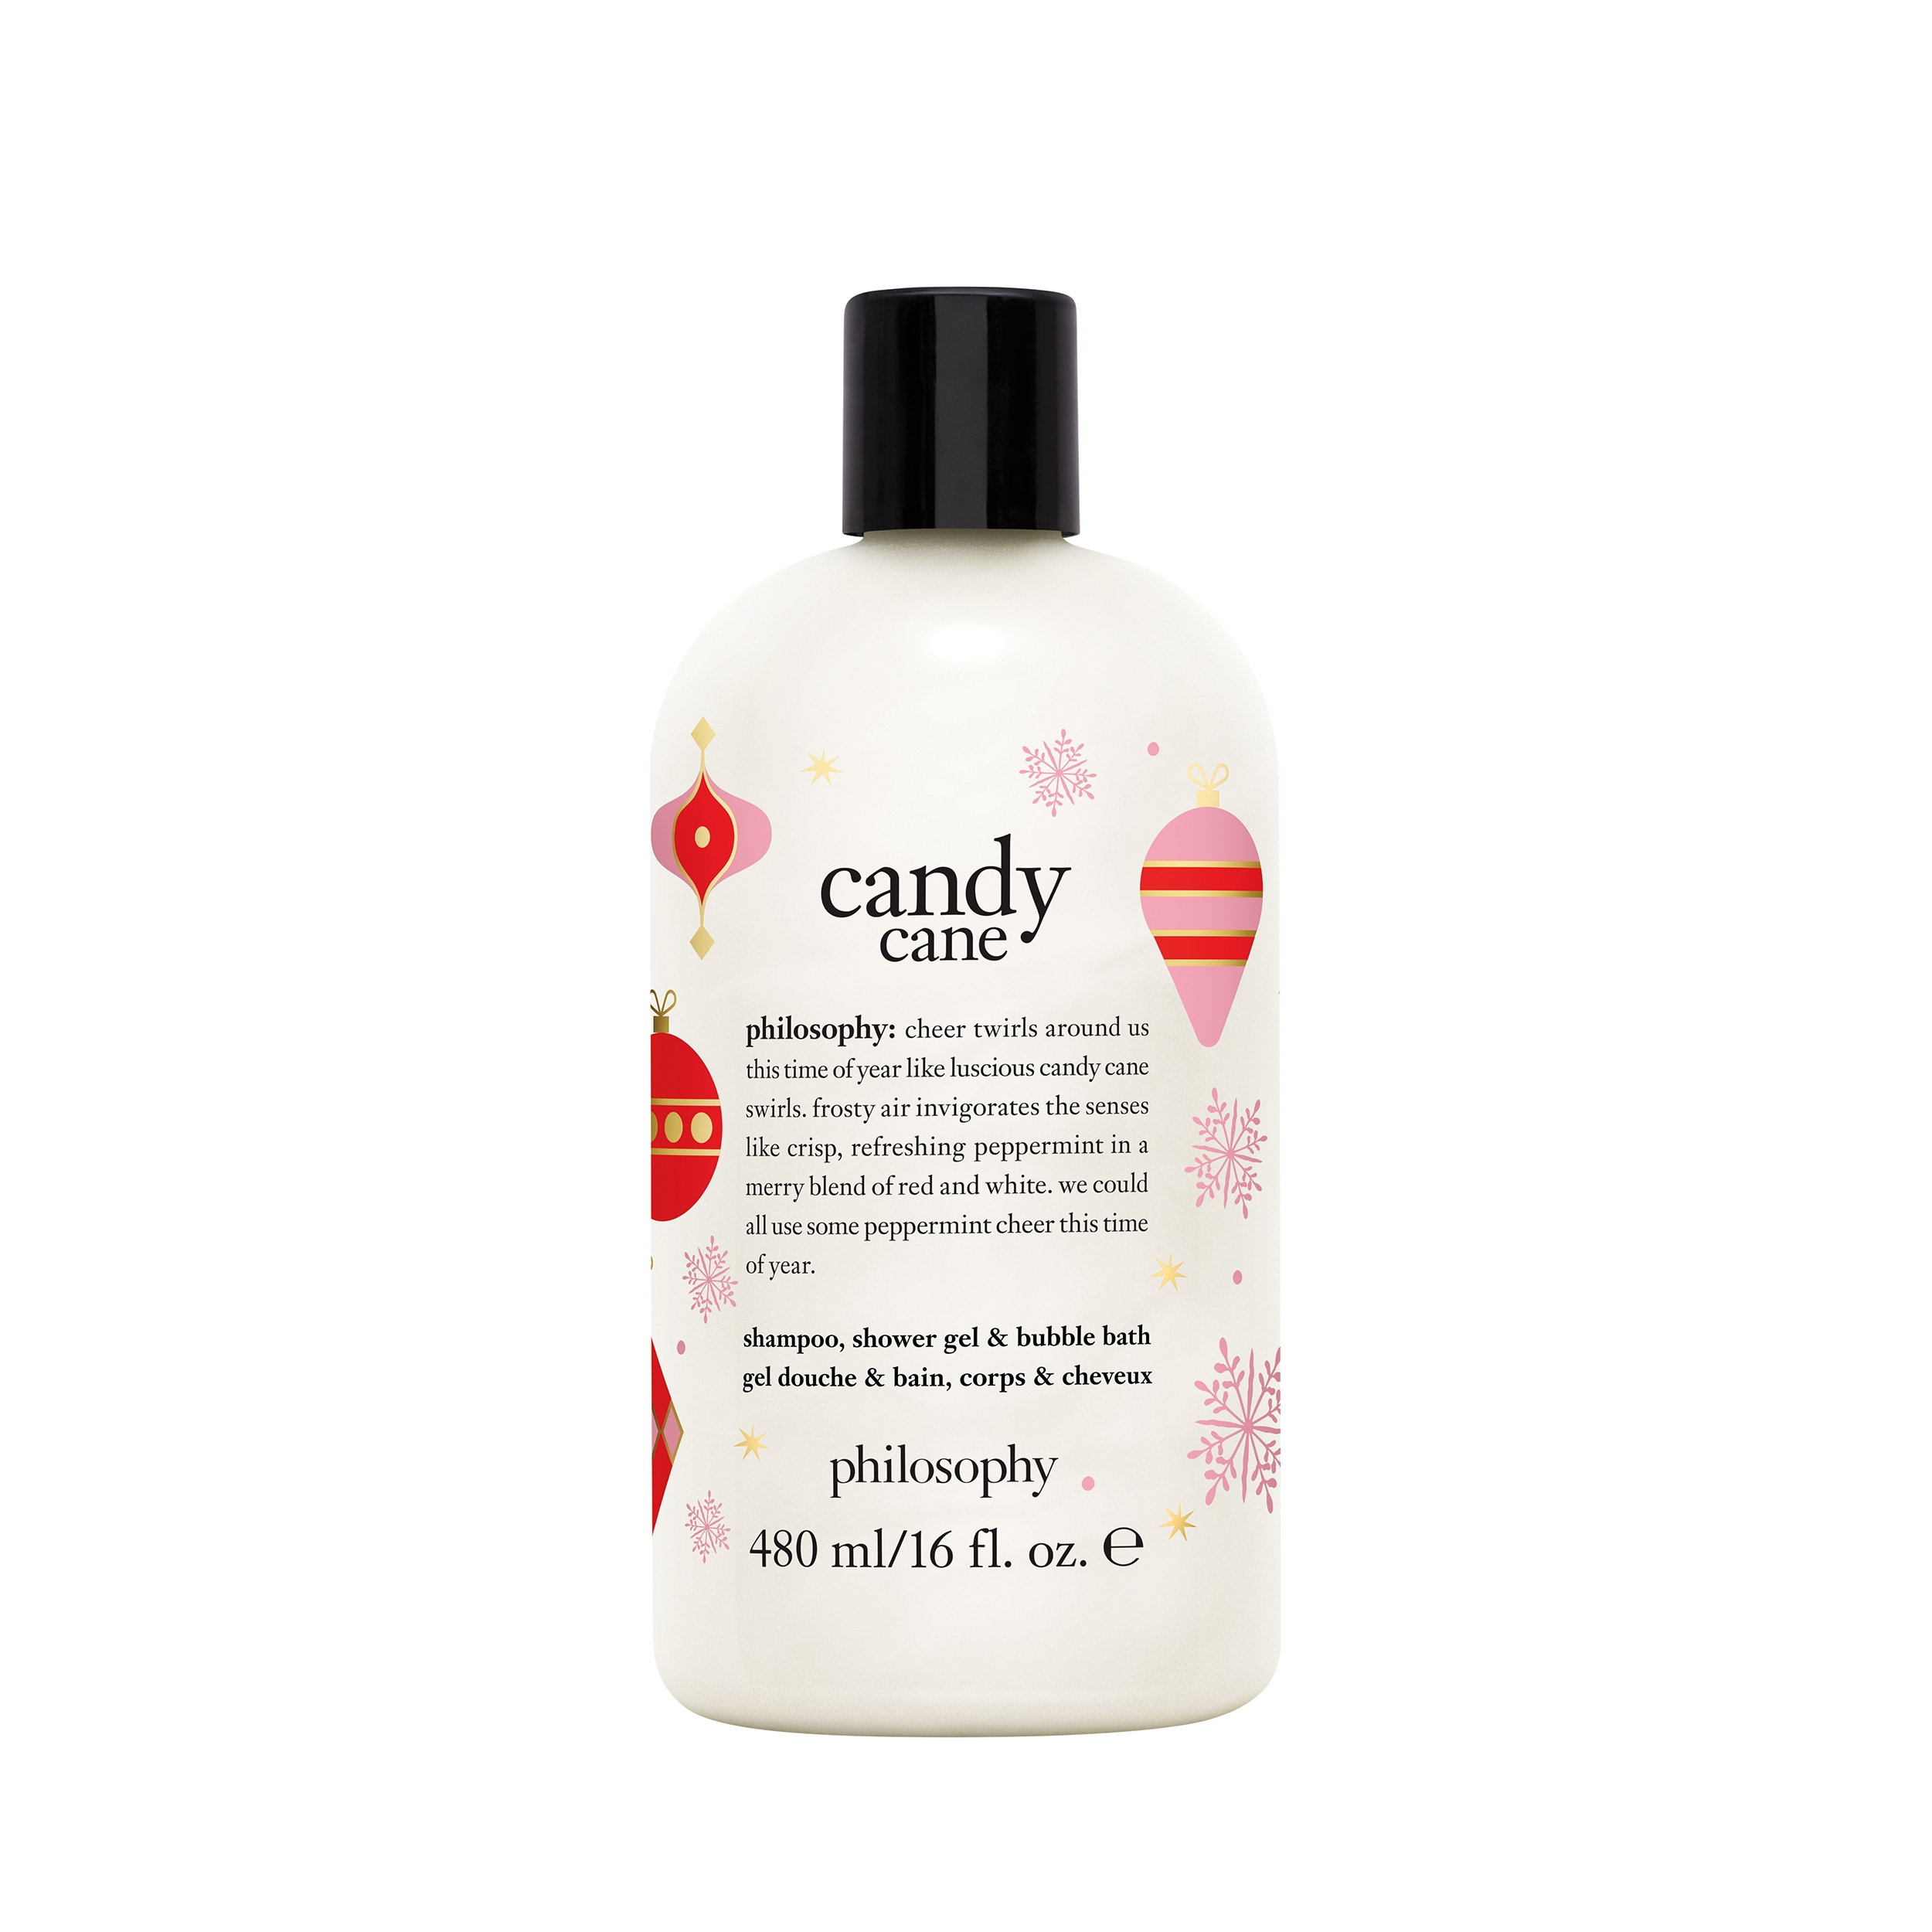 Candy Cane Shampoo Shower Gel And Bubble Bath Philosophy